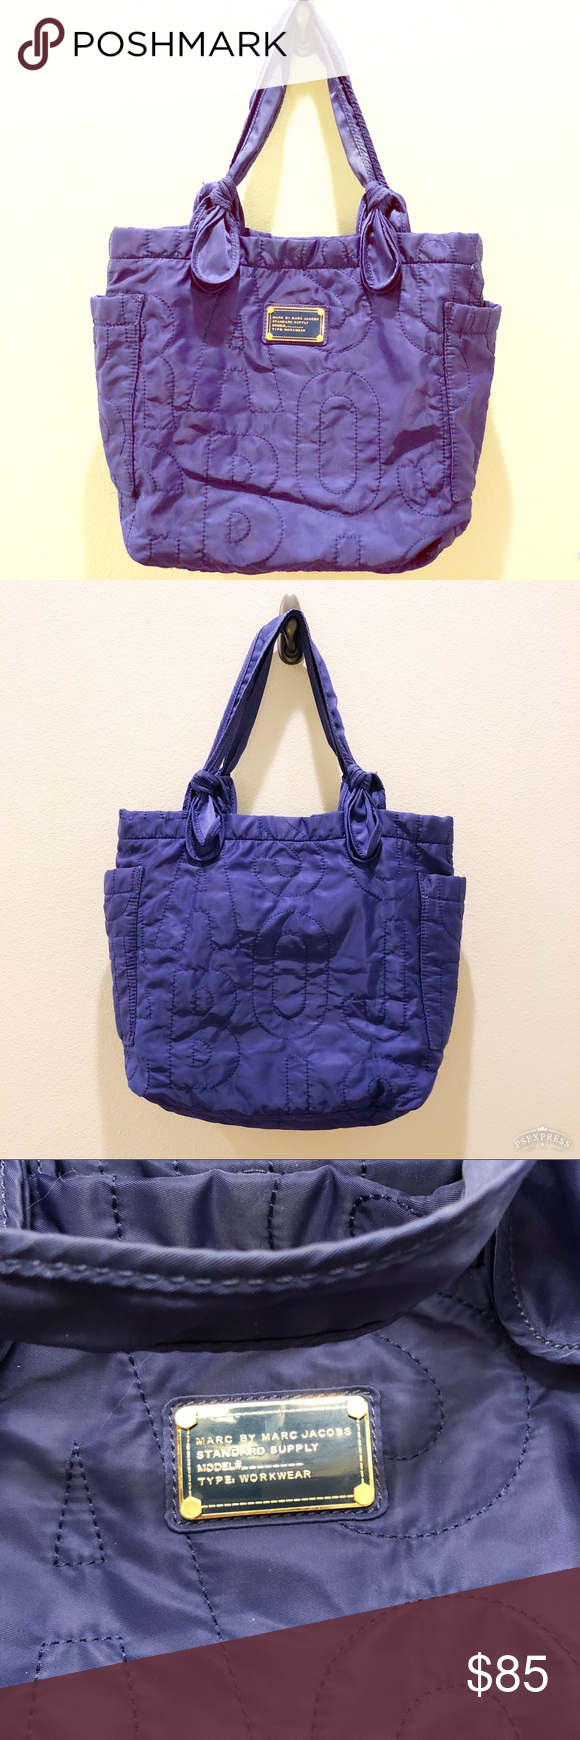 22ad18bcda78 Marc by Marc Jacobs Purple Quilted Nylon Tote Great condition! No  significant spots